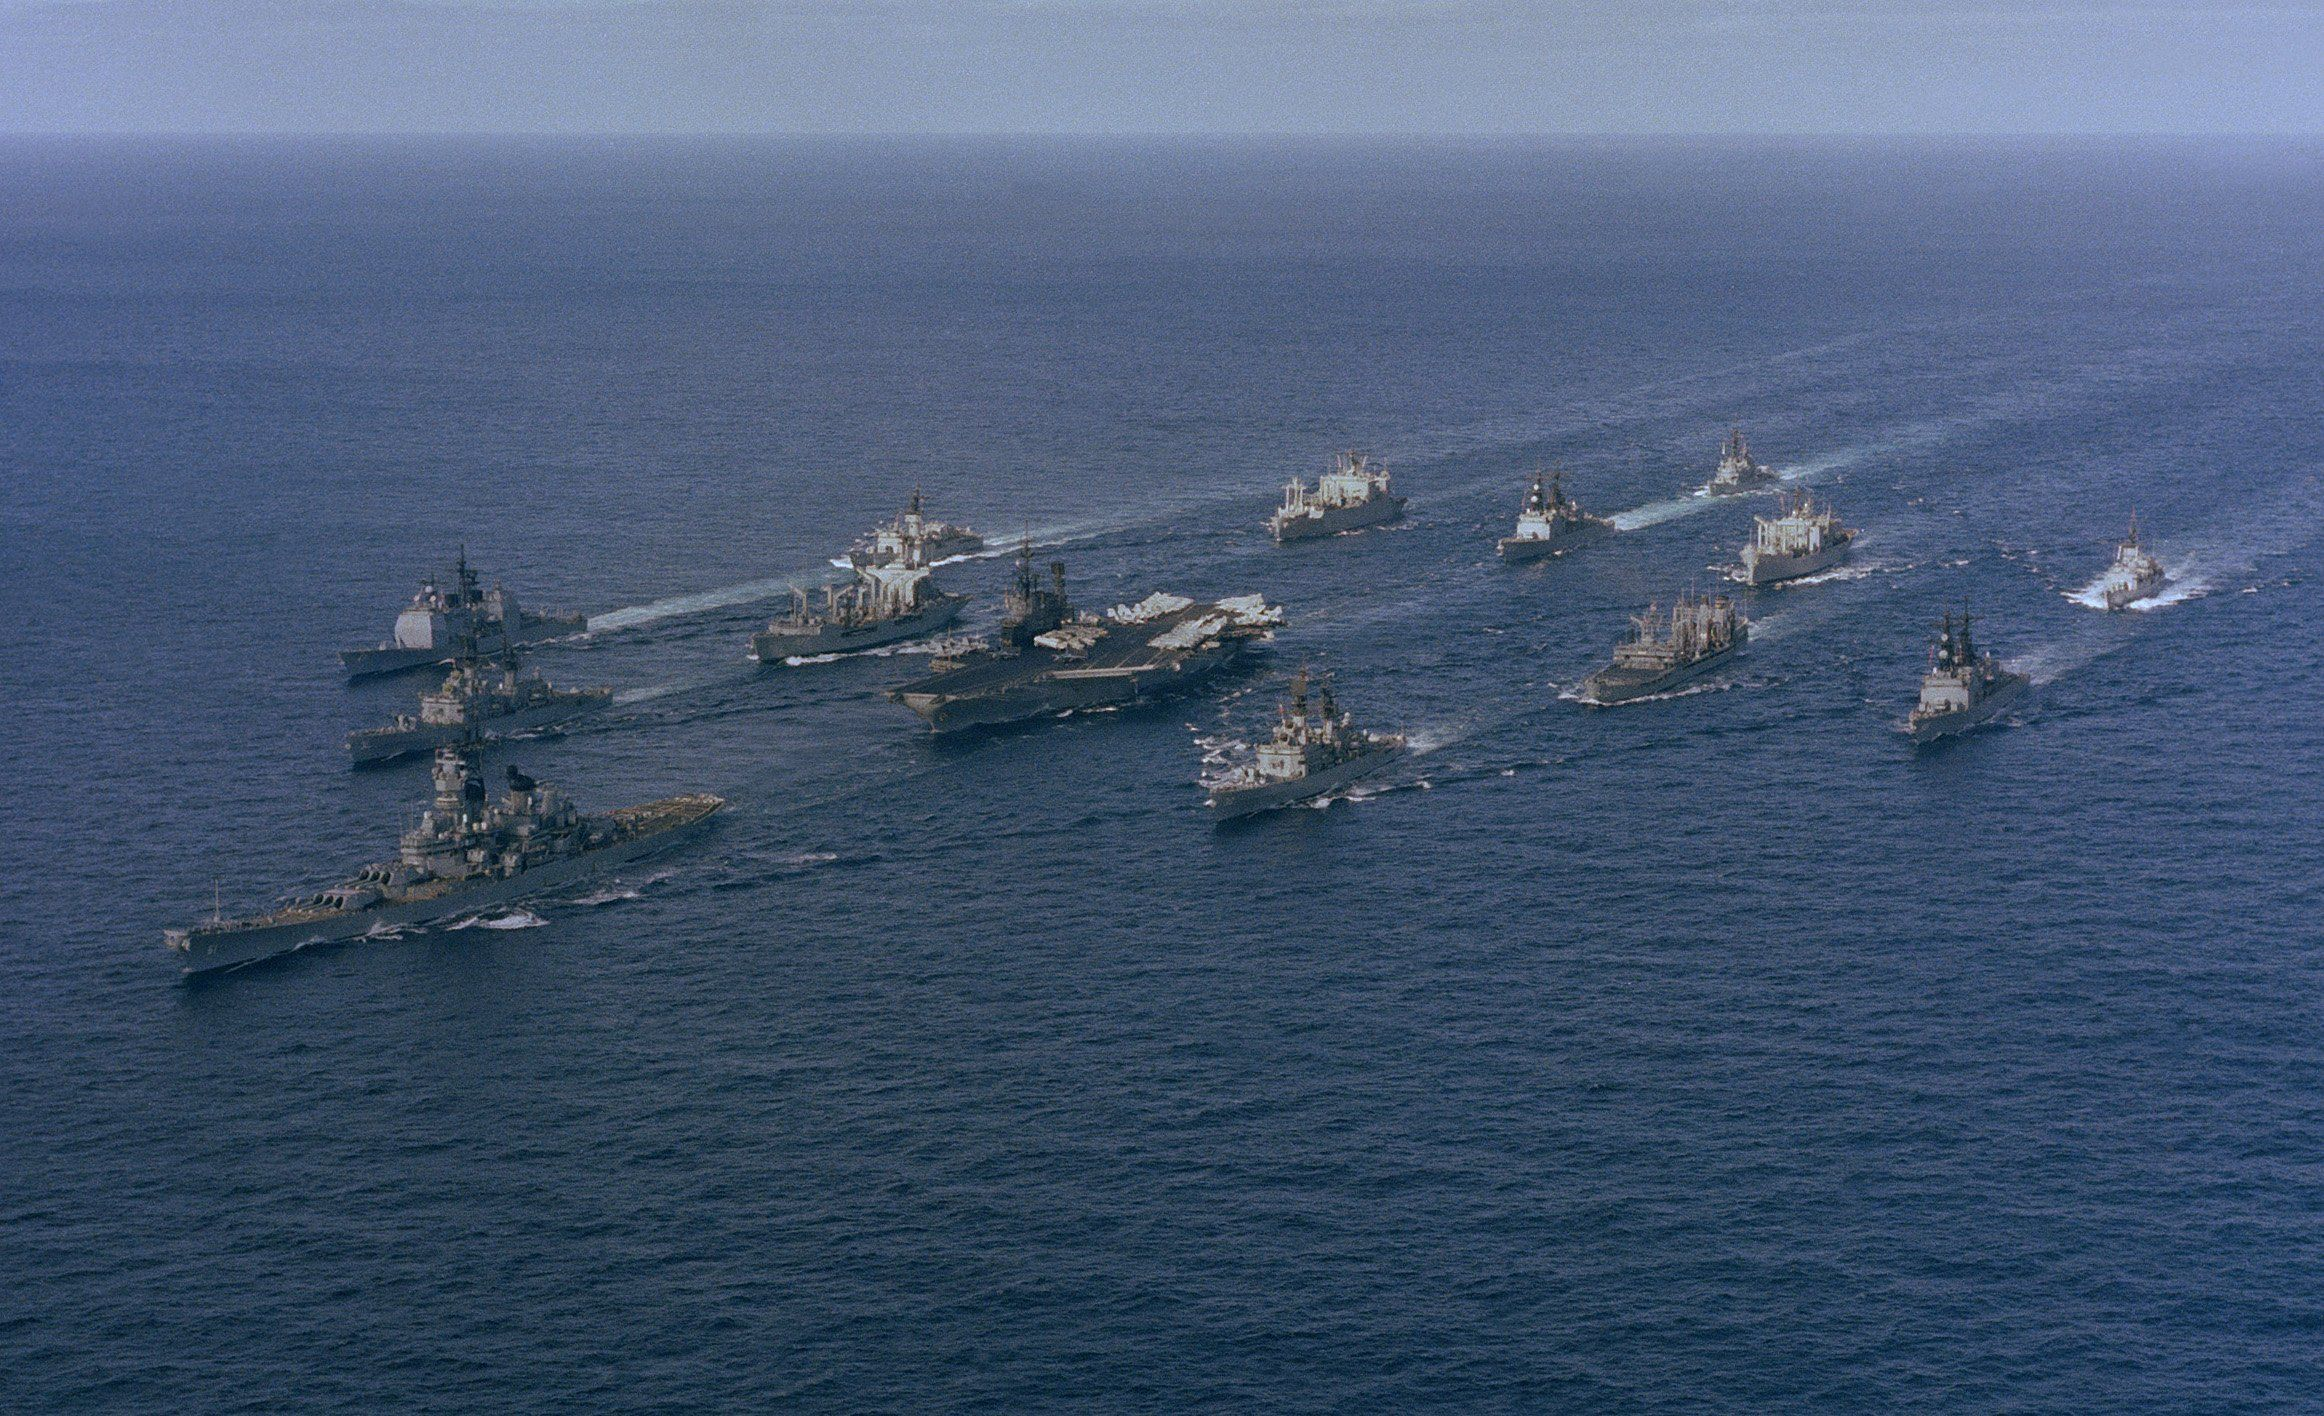 We're sending an Armada.   How about we just call it a Carrier Battle Group.   Edit: CBG  Edit 2: USS Carl Vinson Carrier Battle Group